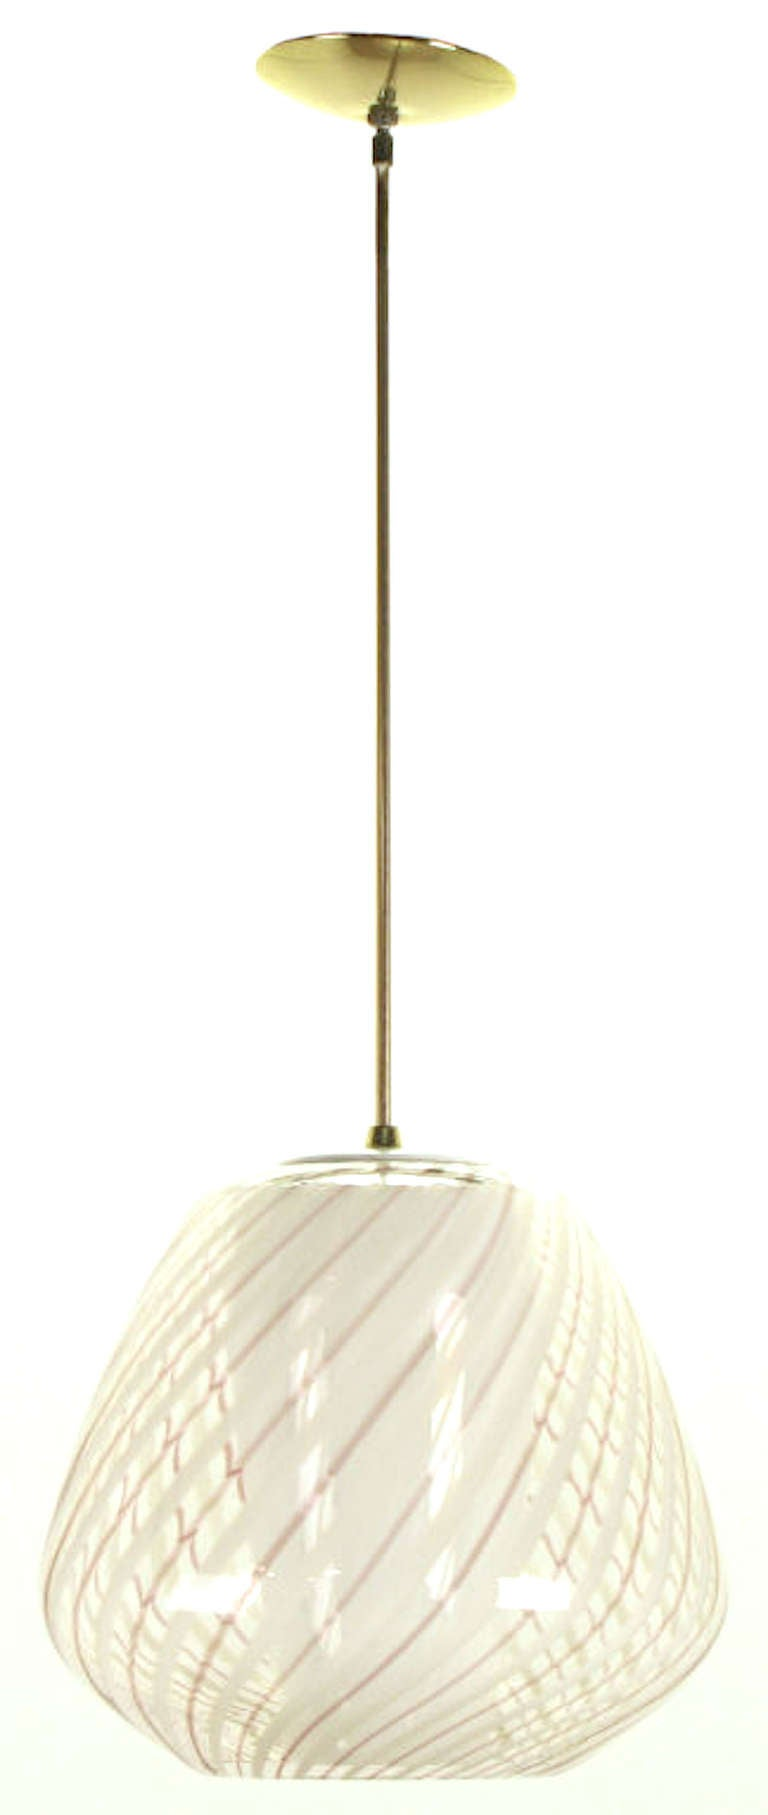 lightolier hand blown striped glass globe pendant light at 1stdibs